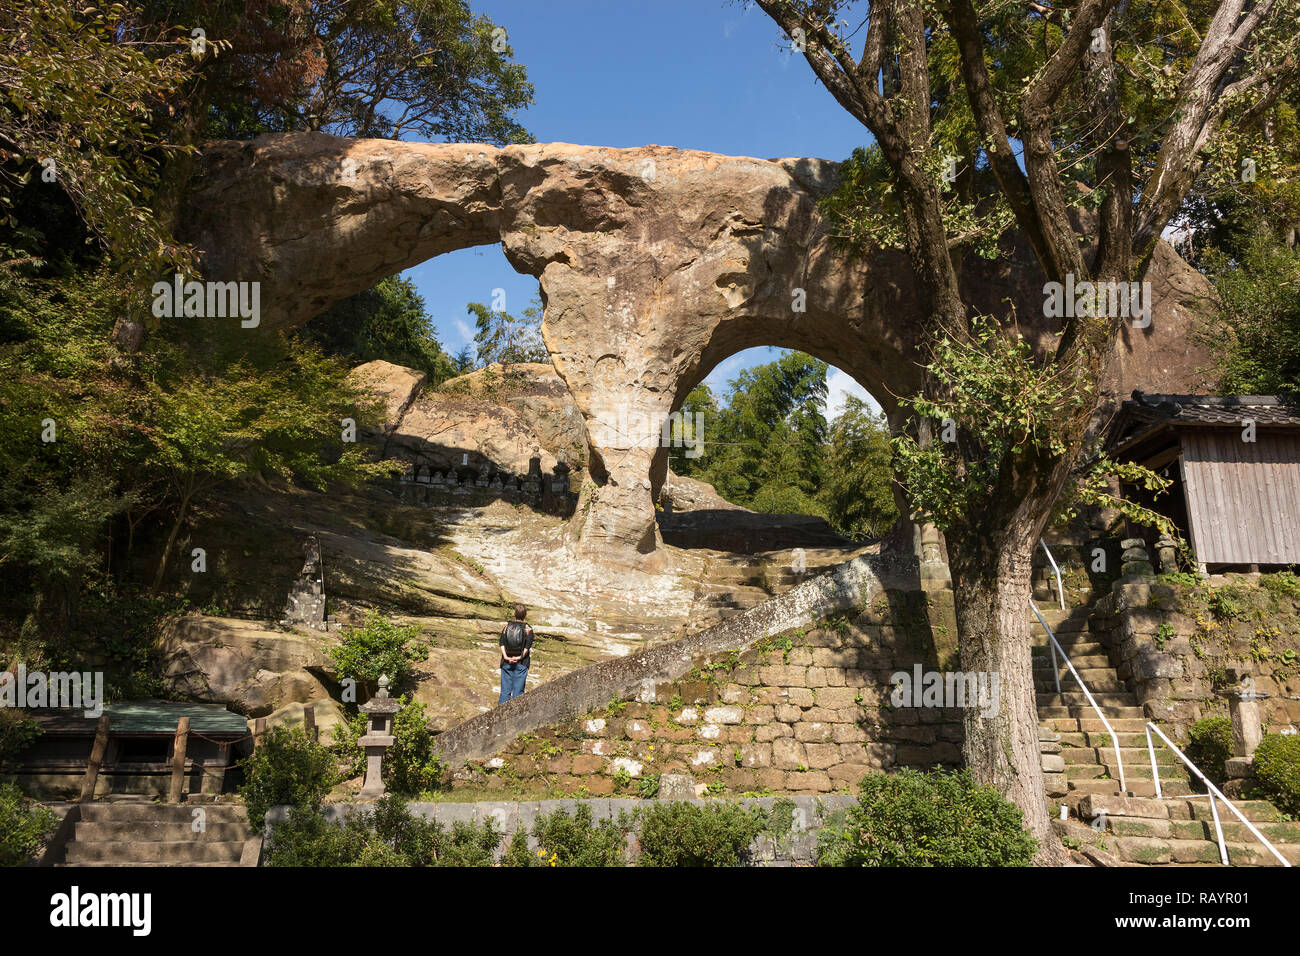 Sasebo, Japan - October 29, 2018: Spectacles rock, Meganeiwa, literally eyeglasses rock, scenic place in Sassebo - Stock Image